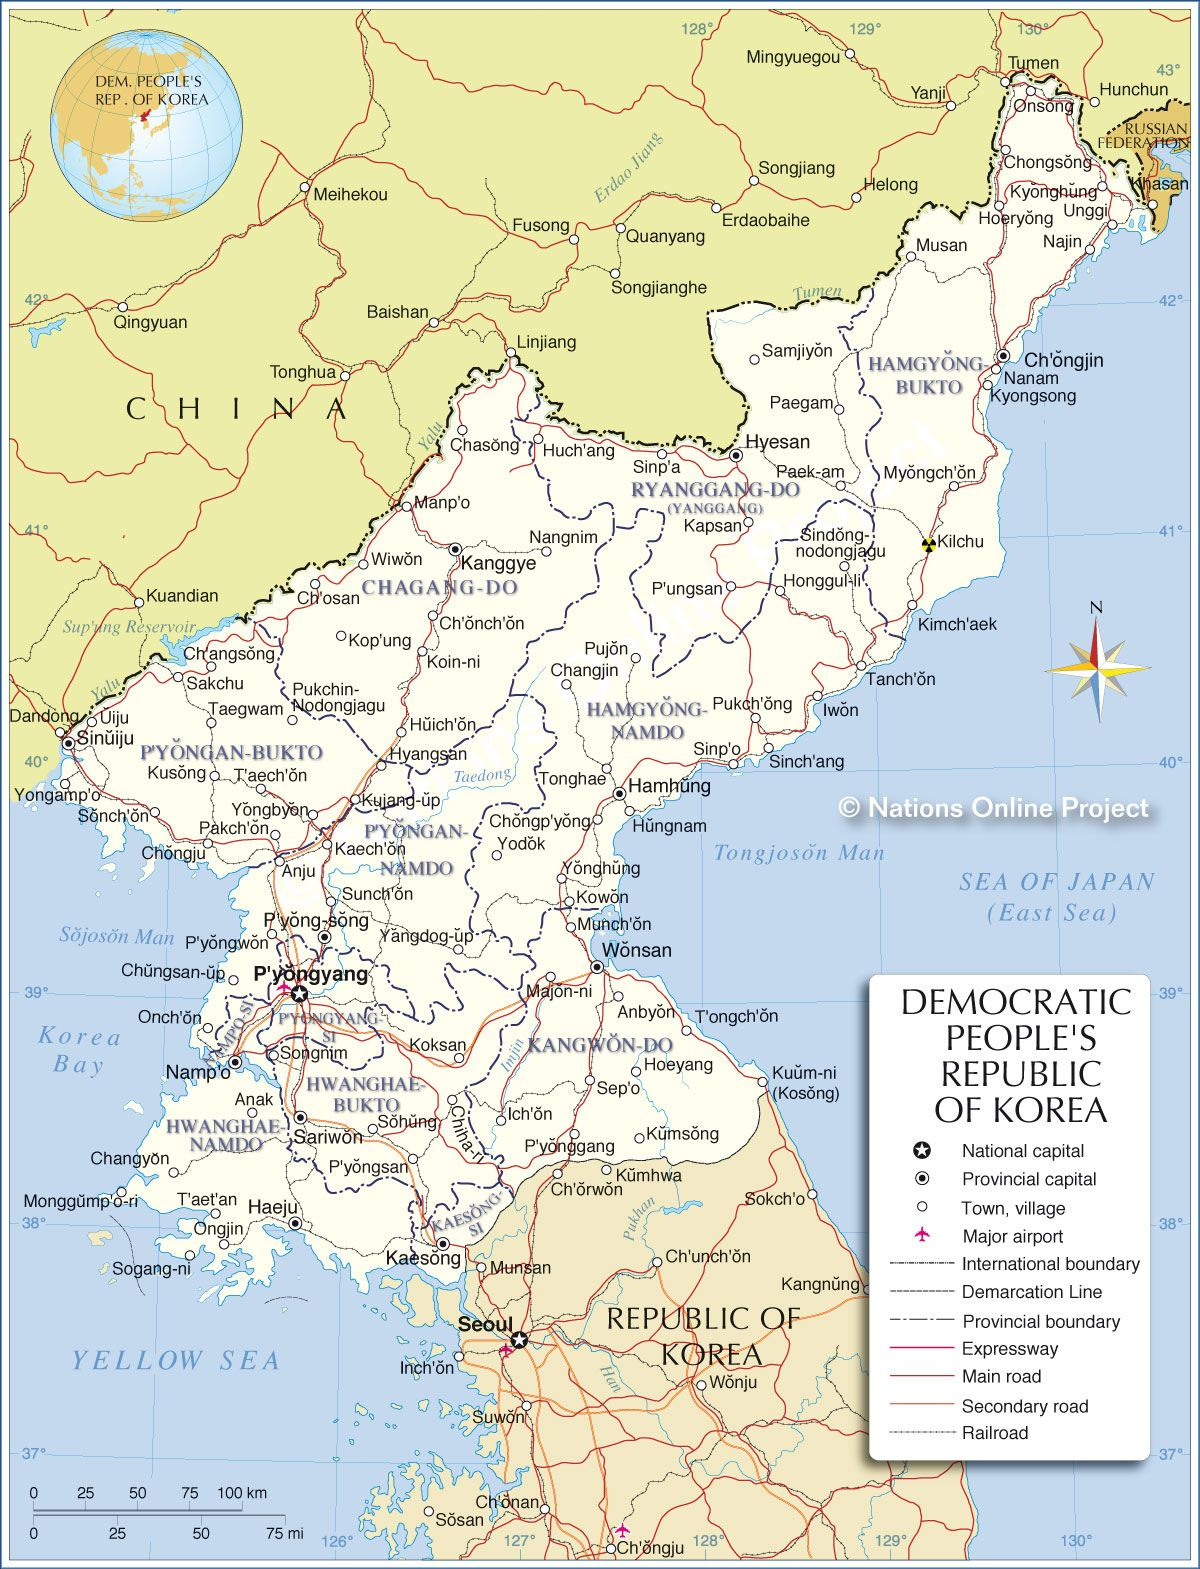 North korea map north korea pinterest north korea korea and asia map showing north korea and the surrounding countries gumiabroncs Image collections